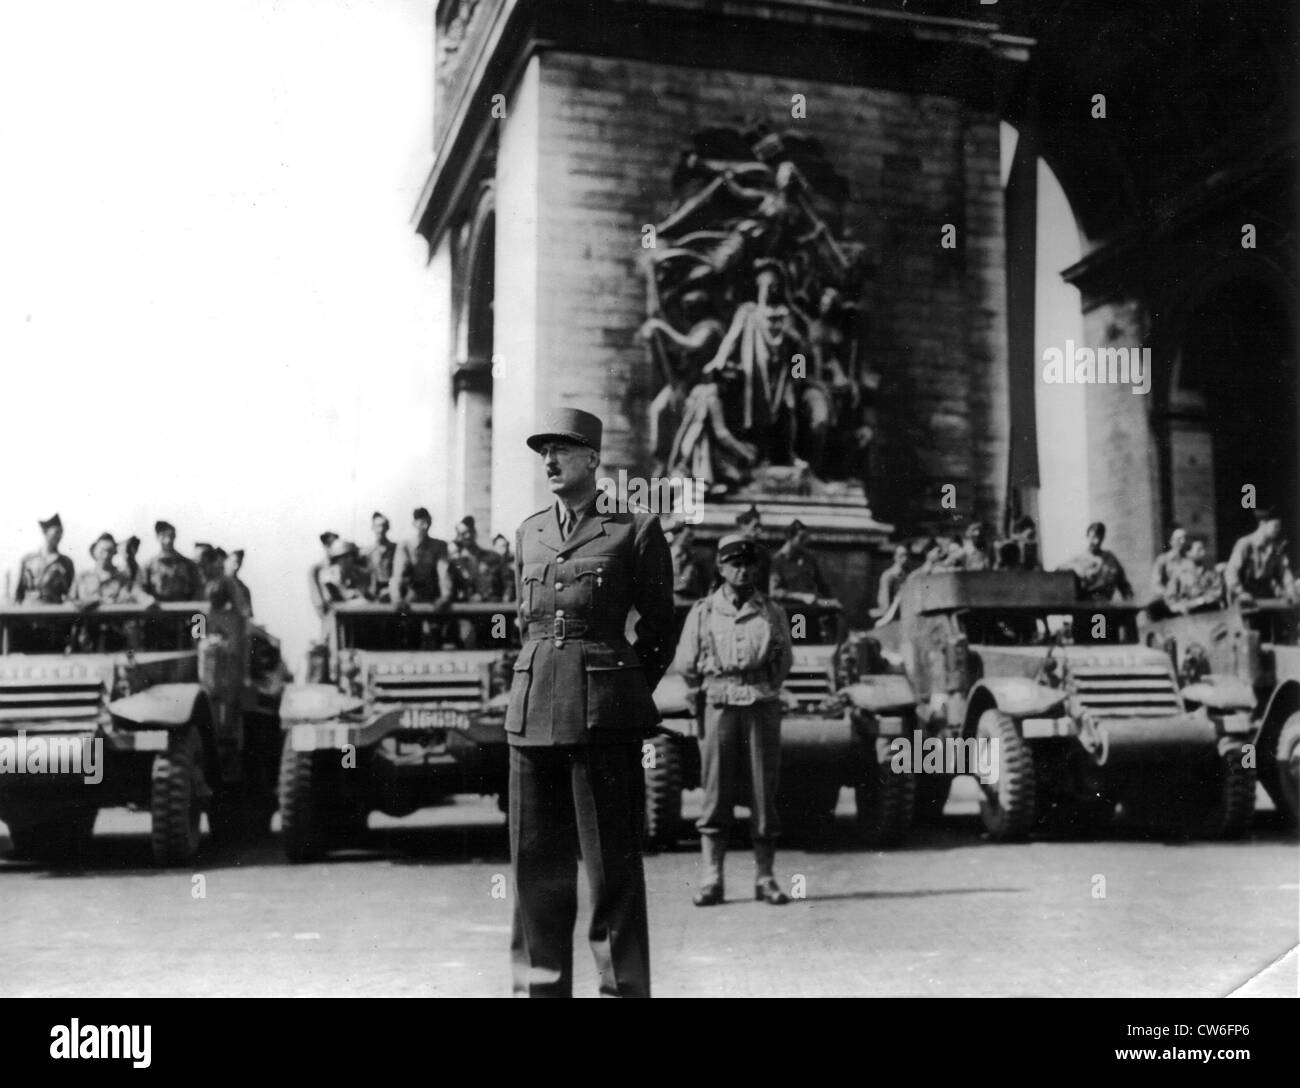 French General Koenig in Paris, August 25, 1944 - Stock Image